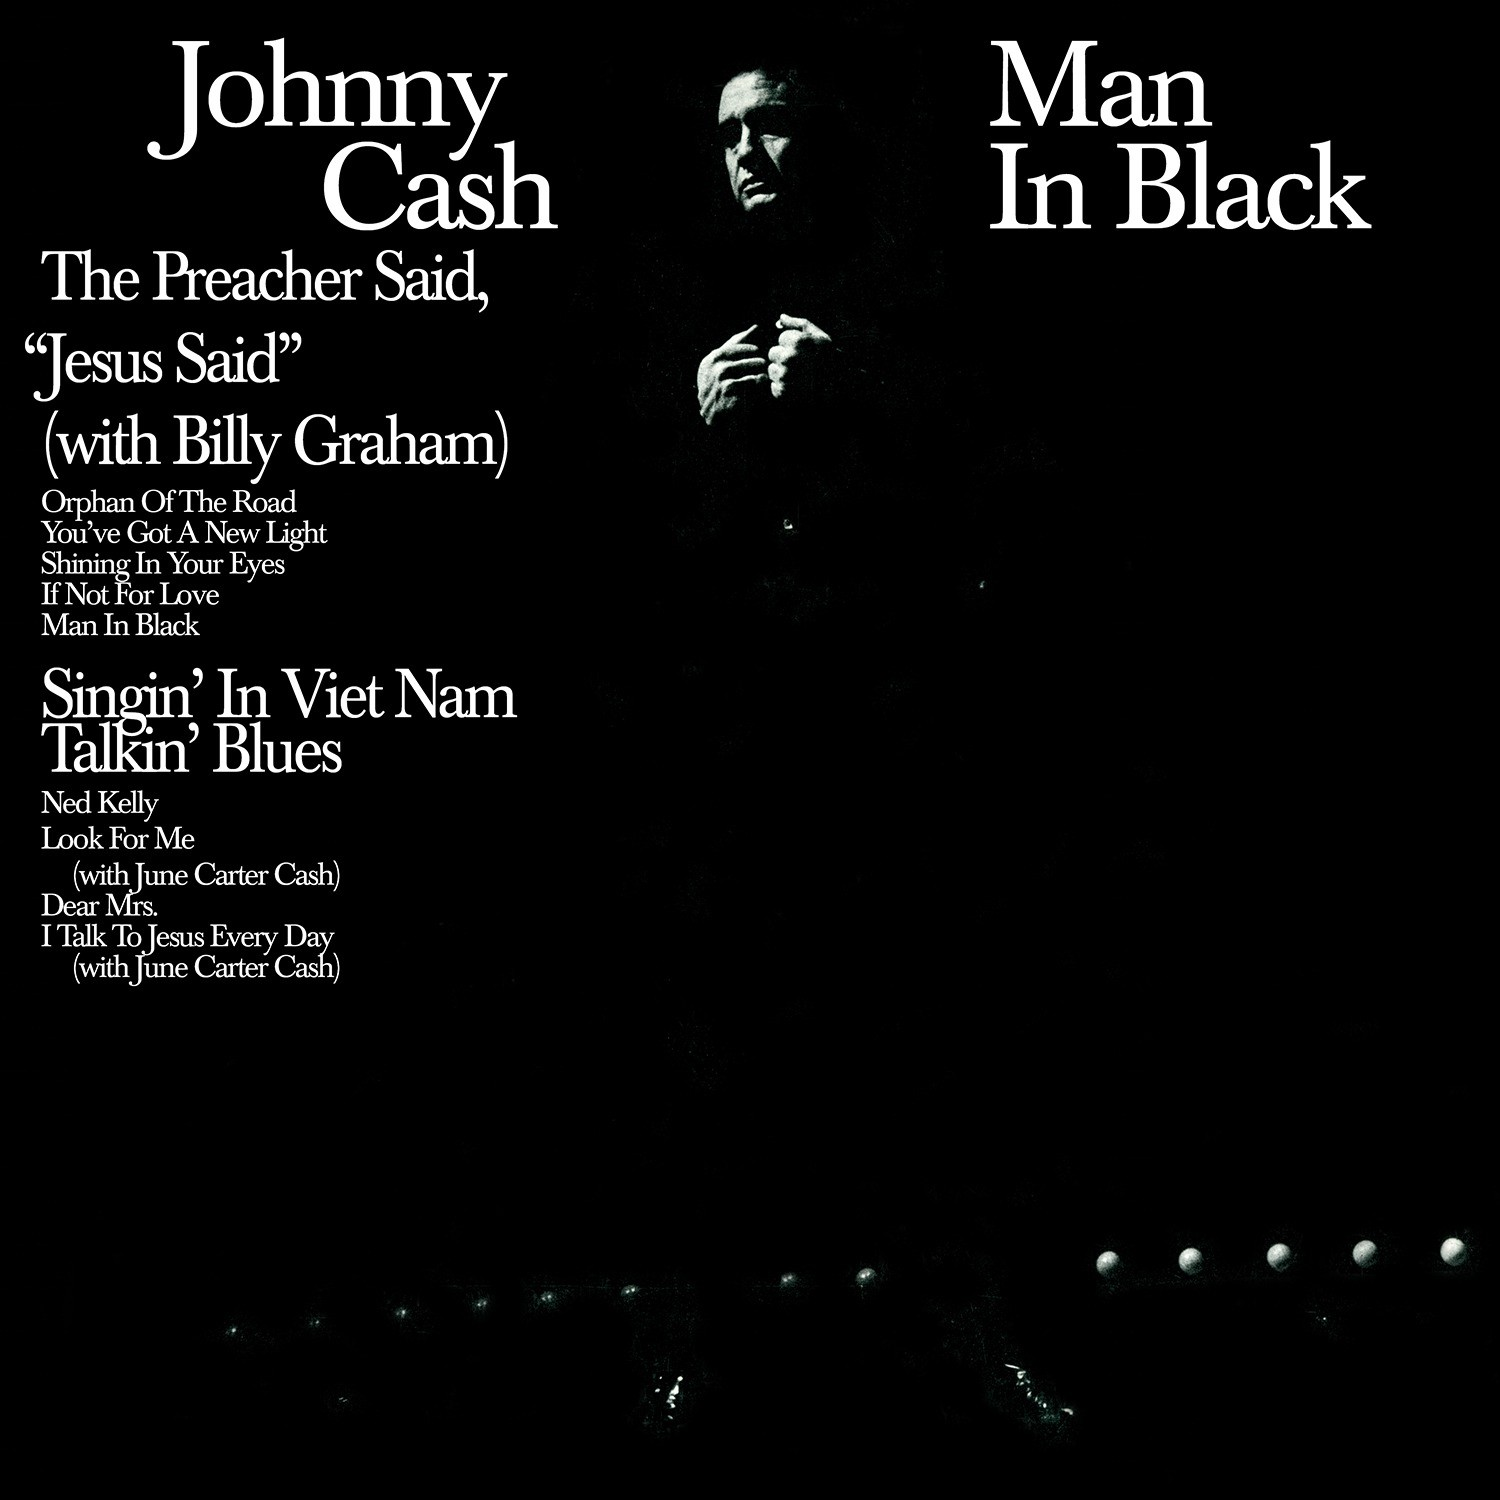 Johnny Cash - Man In Black LP